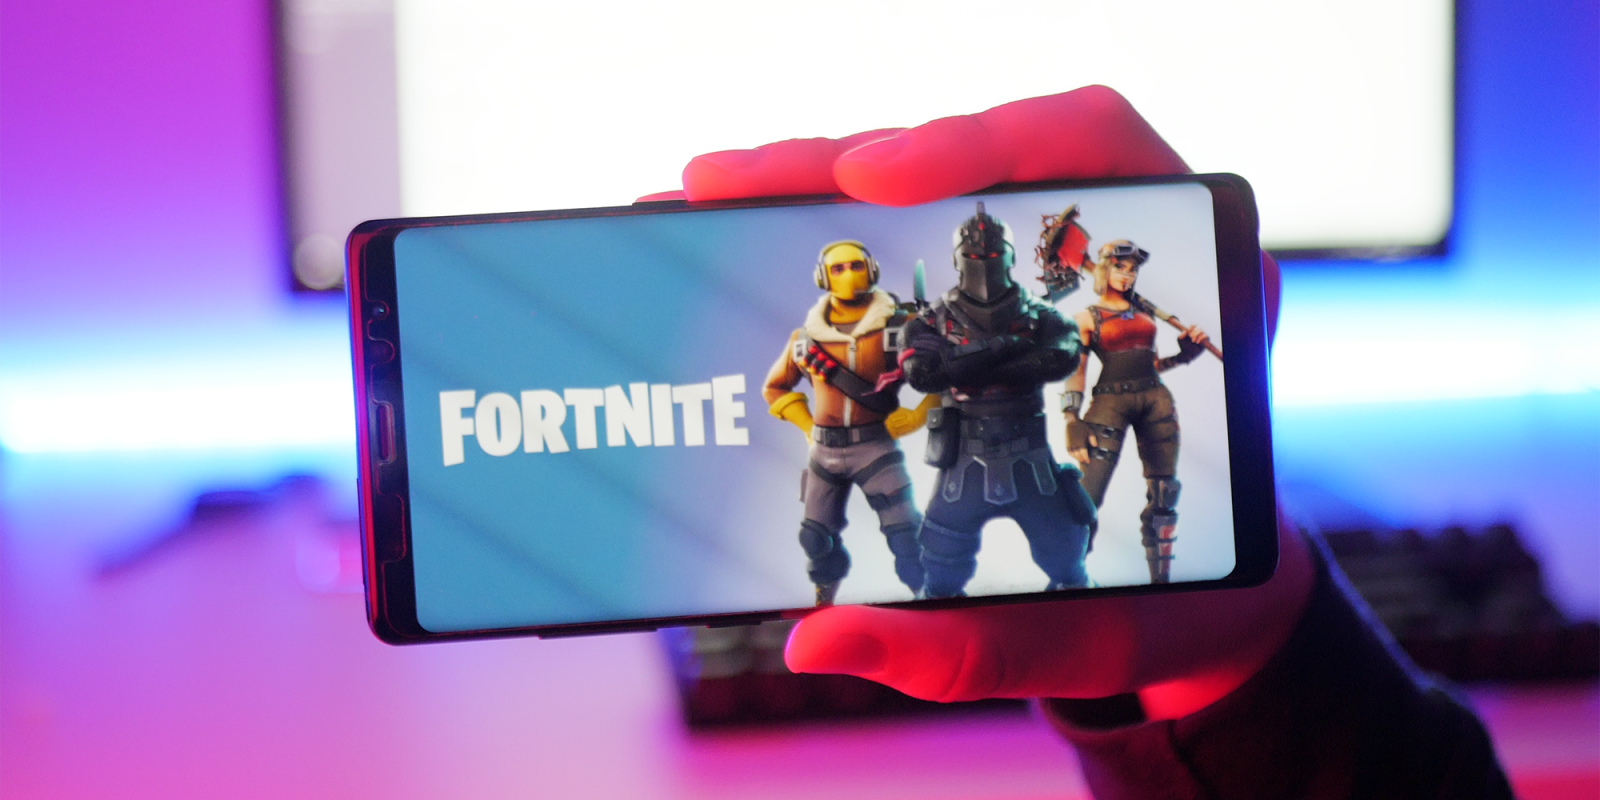 Google Play officially acknowledges that Fortnite is not in the Play